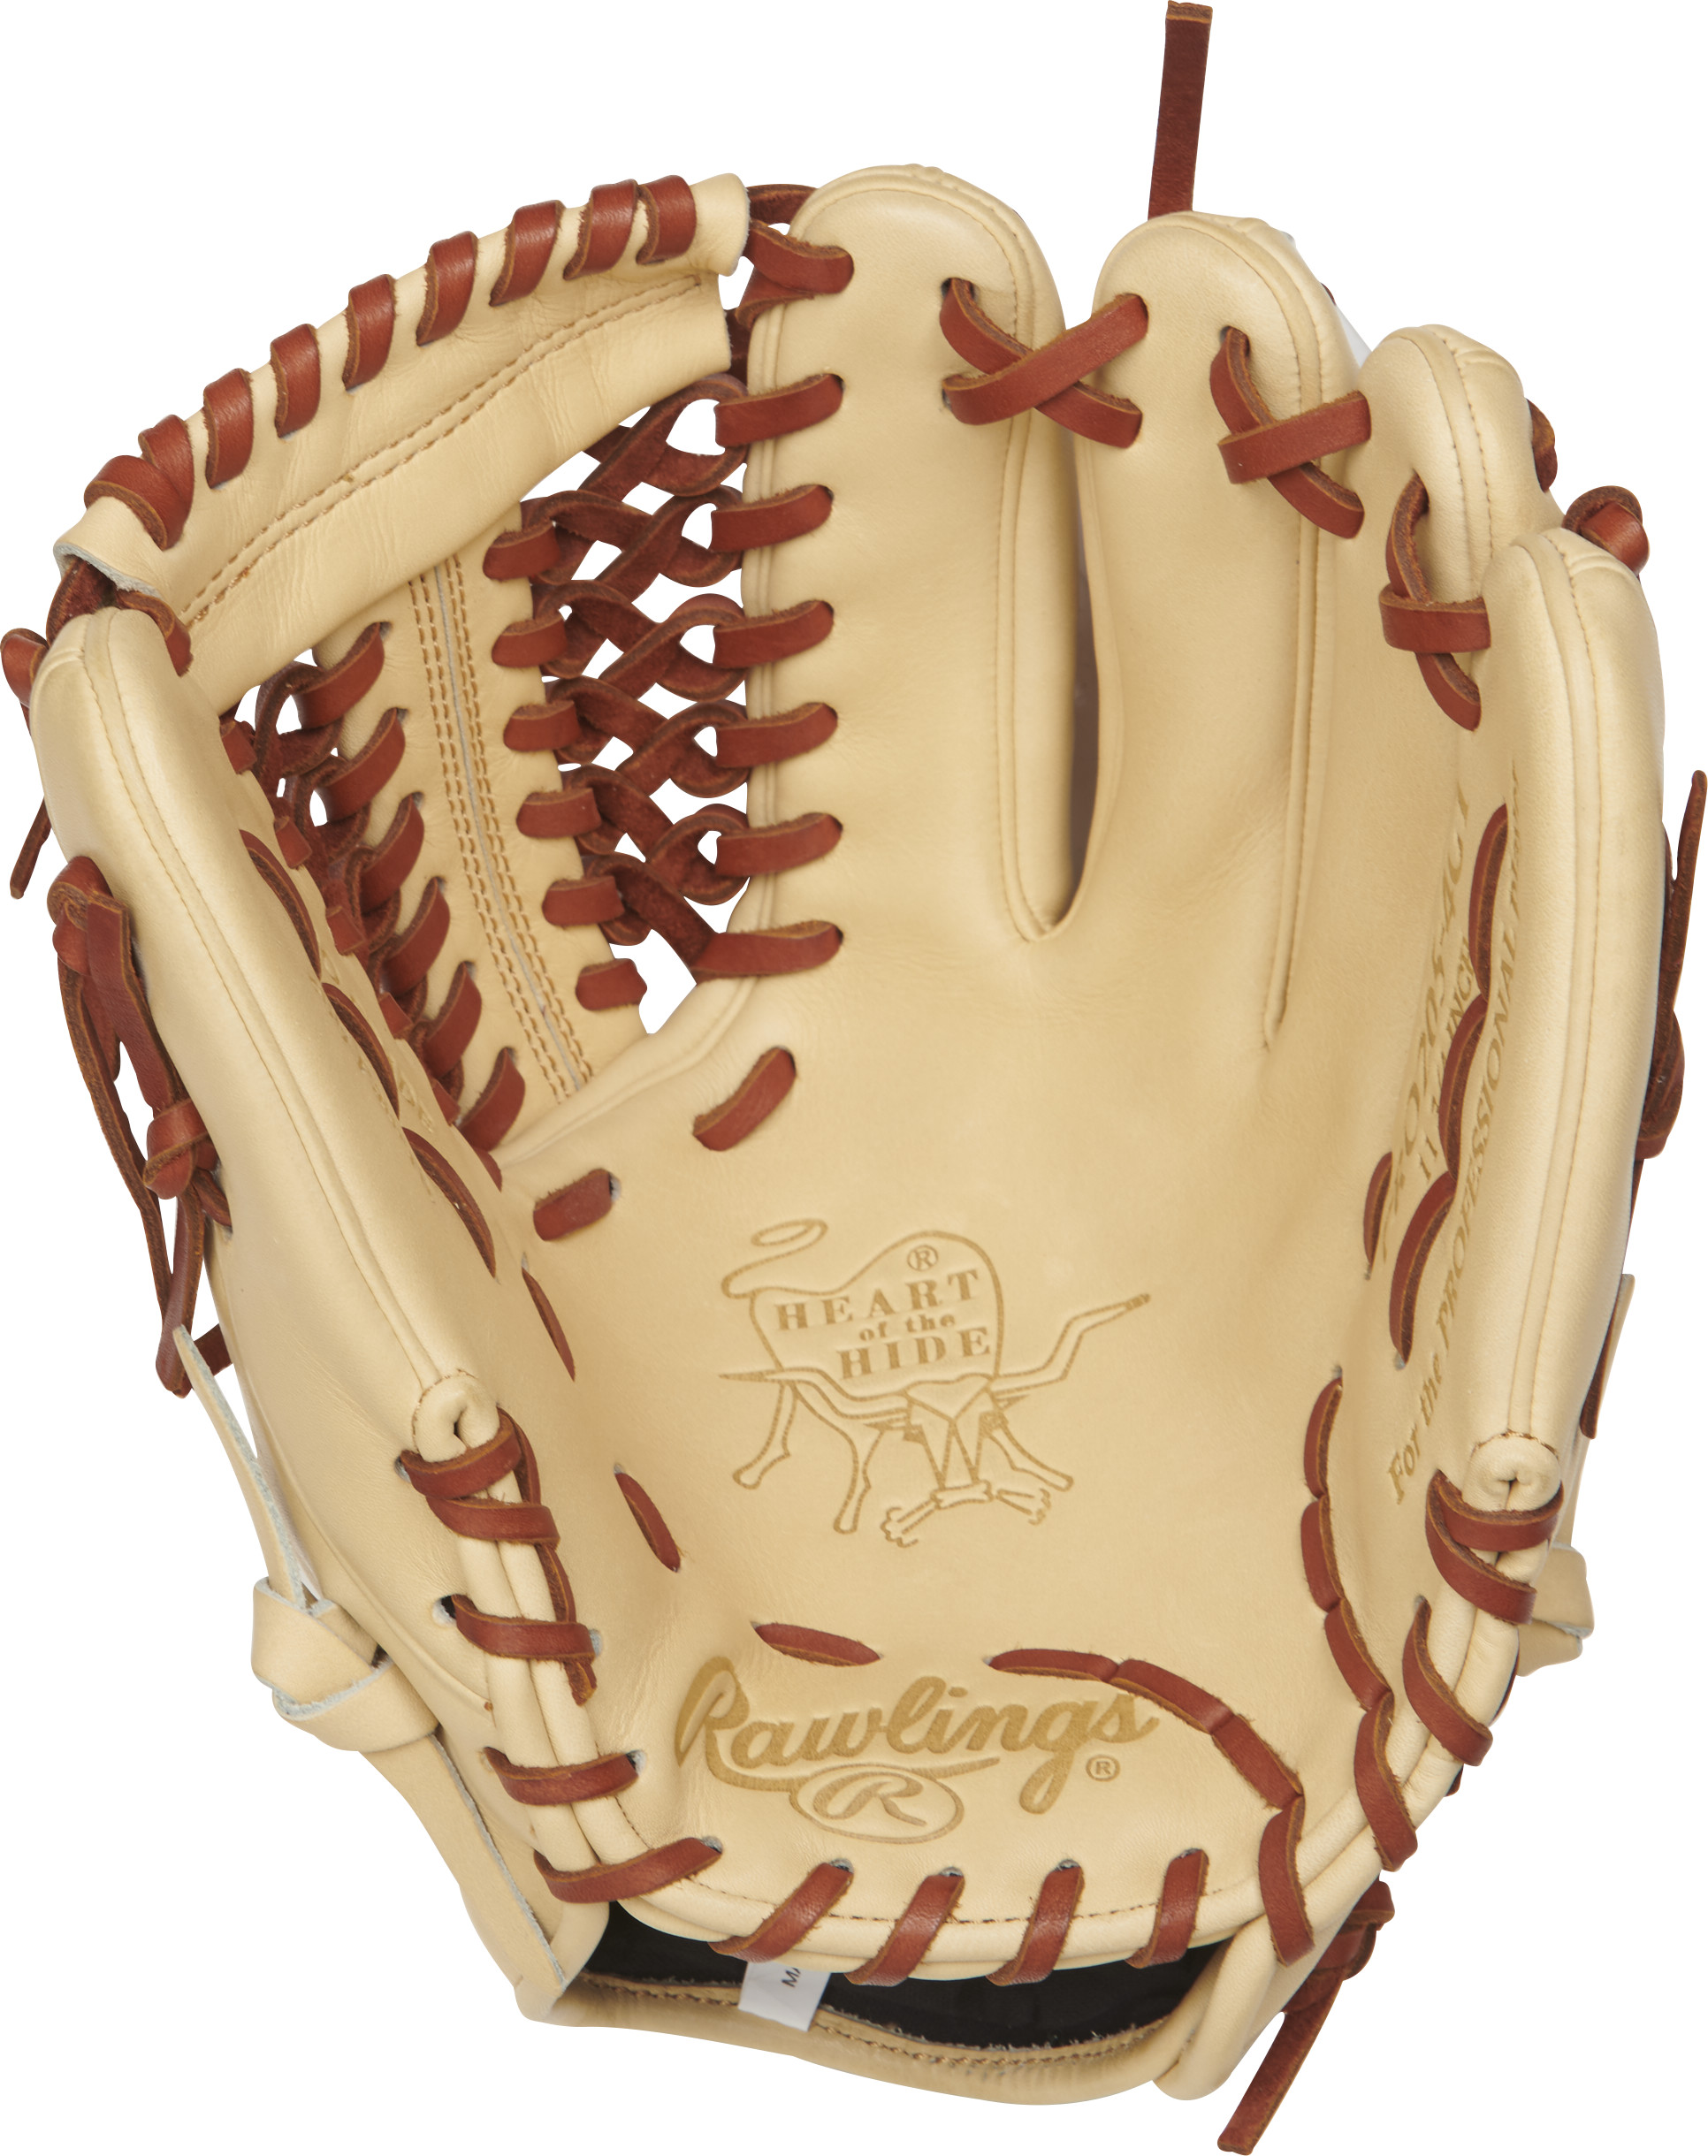 http://www.bestbatdeals.com/images/gloves/rawlings/PRO205-4CT-1.jpg